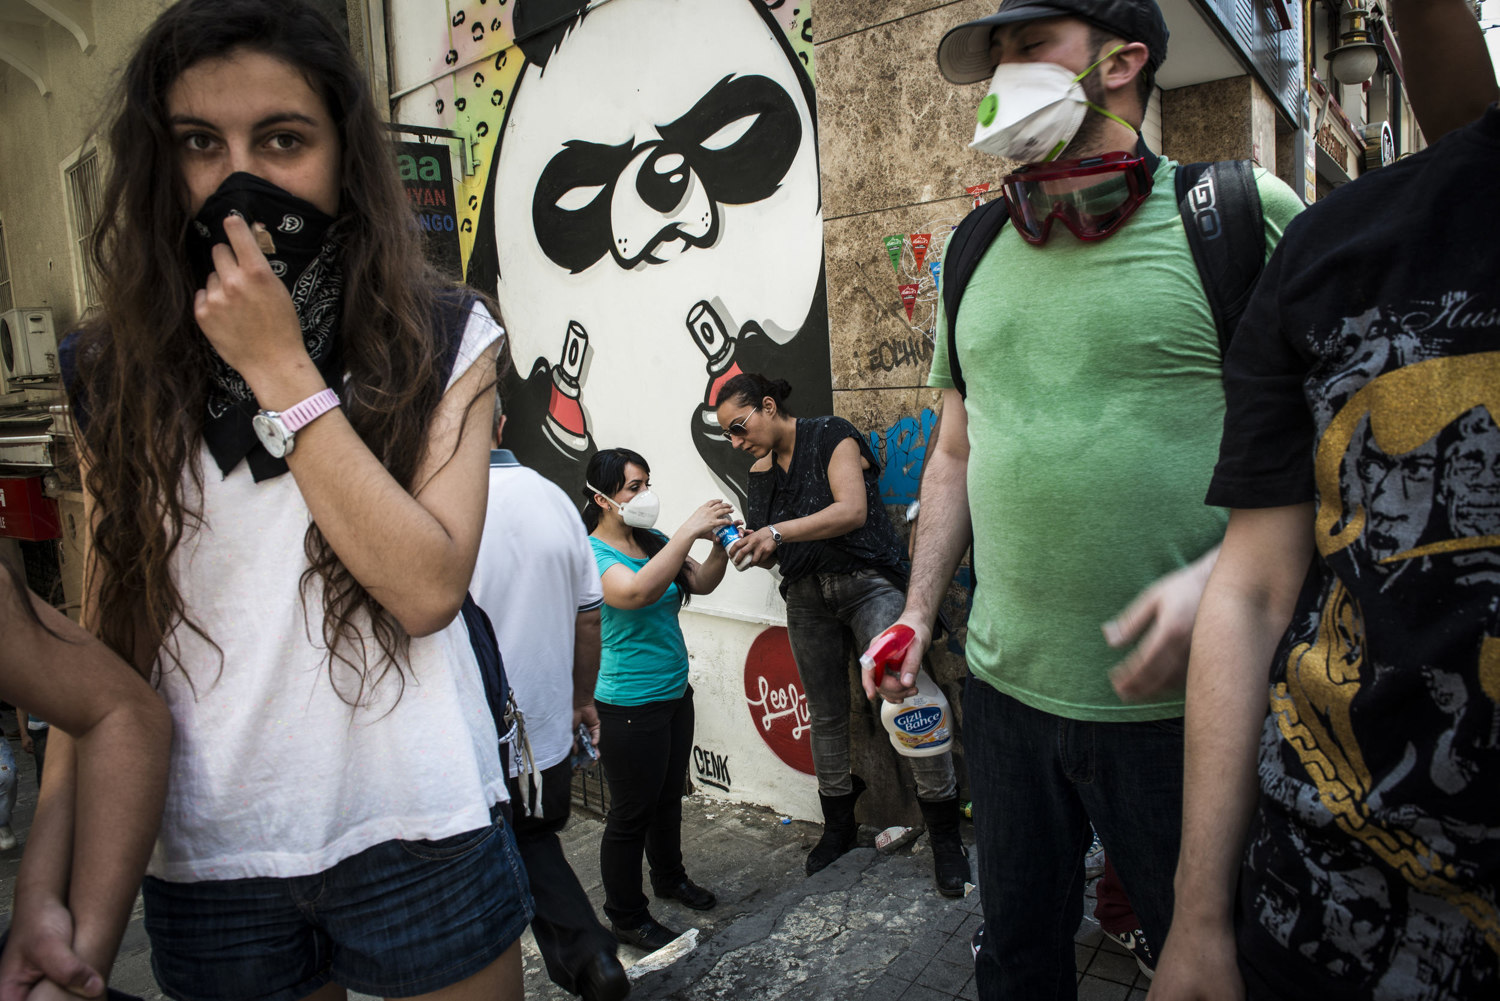 Students prepare a solution of water and milk as an a deterrent for the sting of tear gas off of Istiklal Cadessi on  June 1, 2013